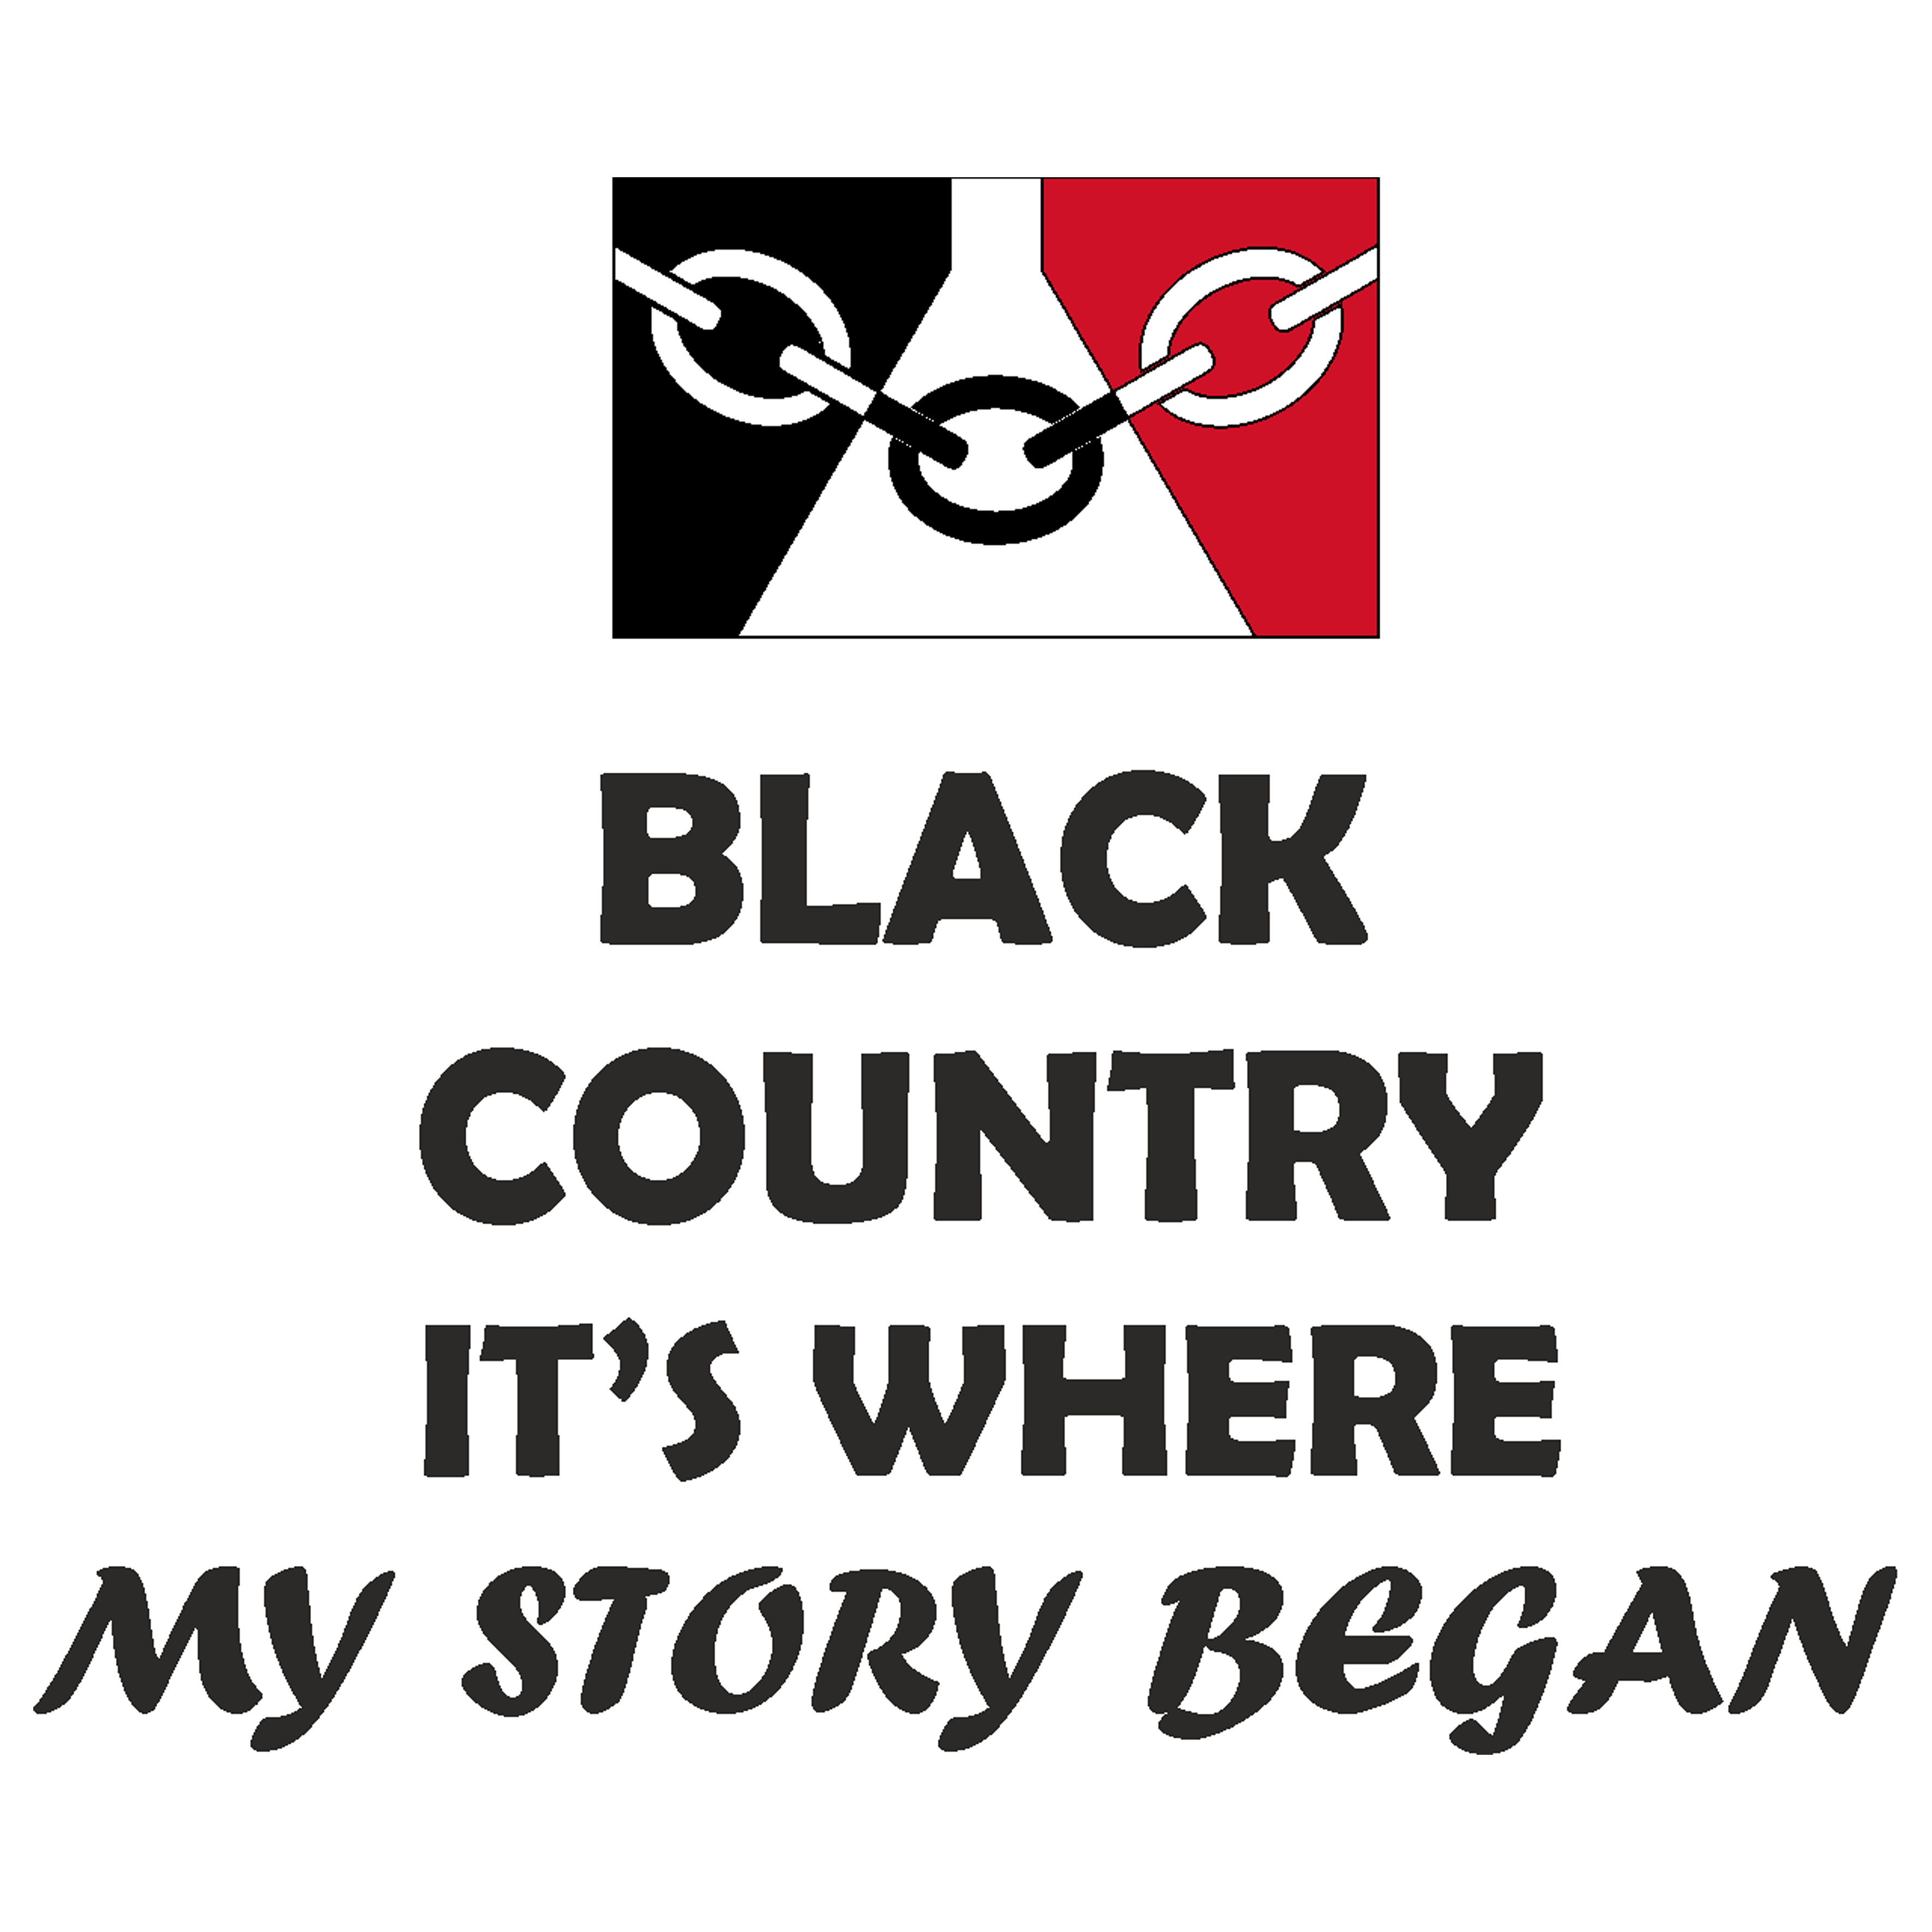 BLC015 - Black Country Where My Story Began